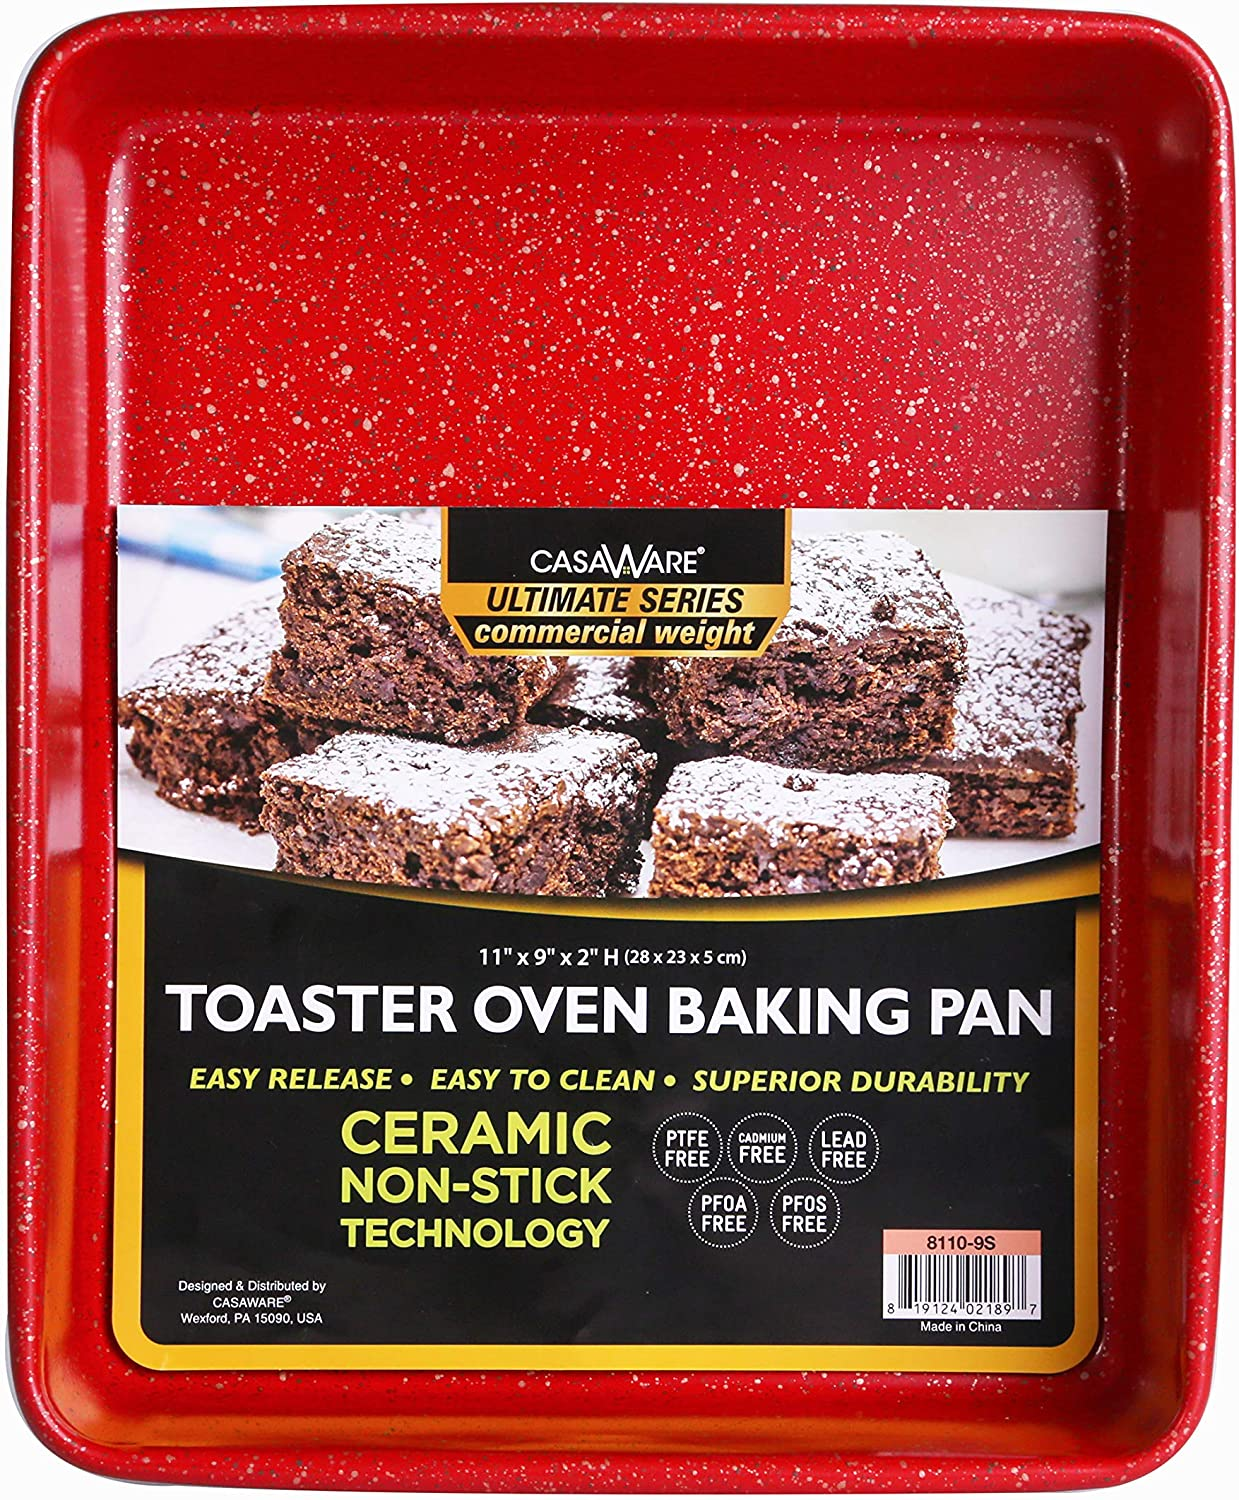 casaWare 11 x 9 x 2-inch Toaster Oven Ultimate Series Commercial Weight Ceramic Non-Stick Coating Baking Pan (Red Granite)